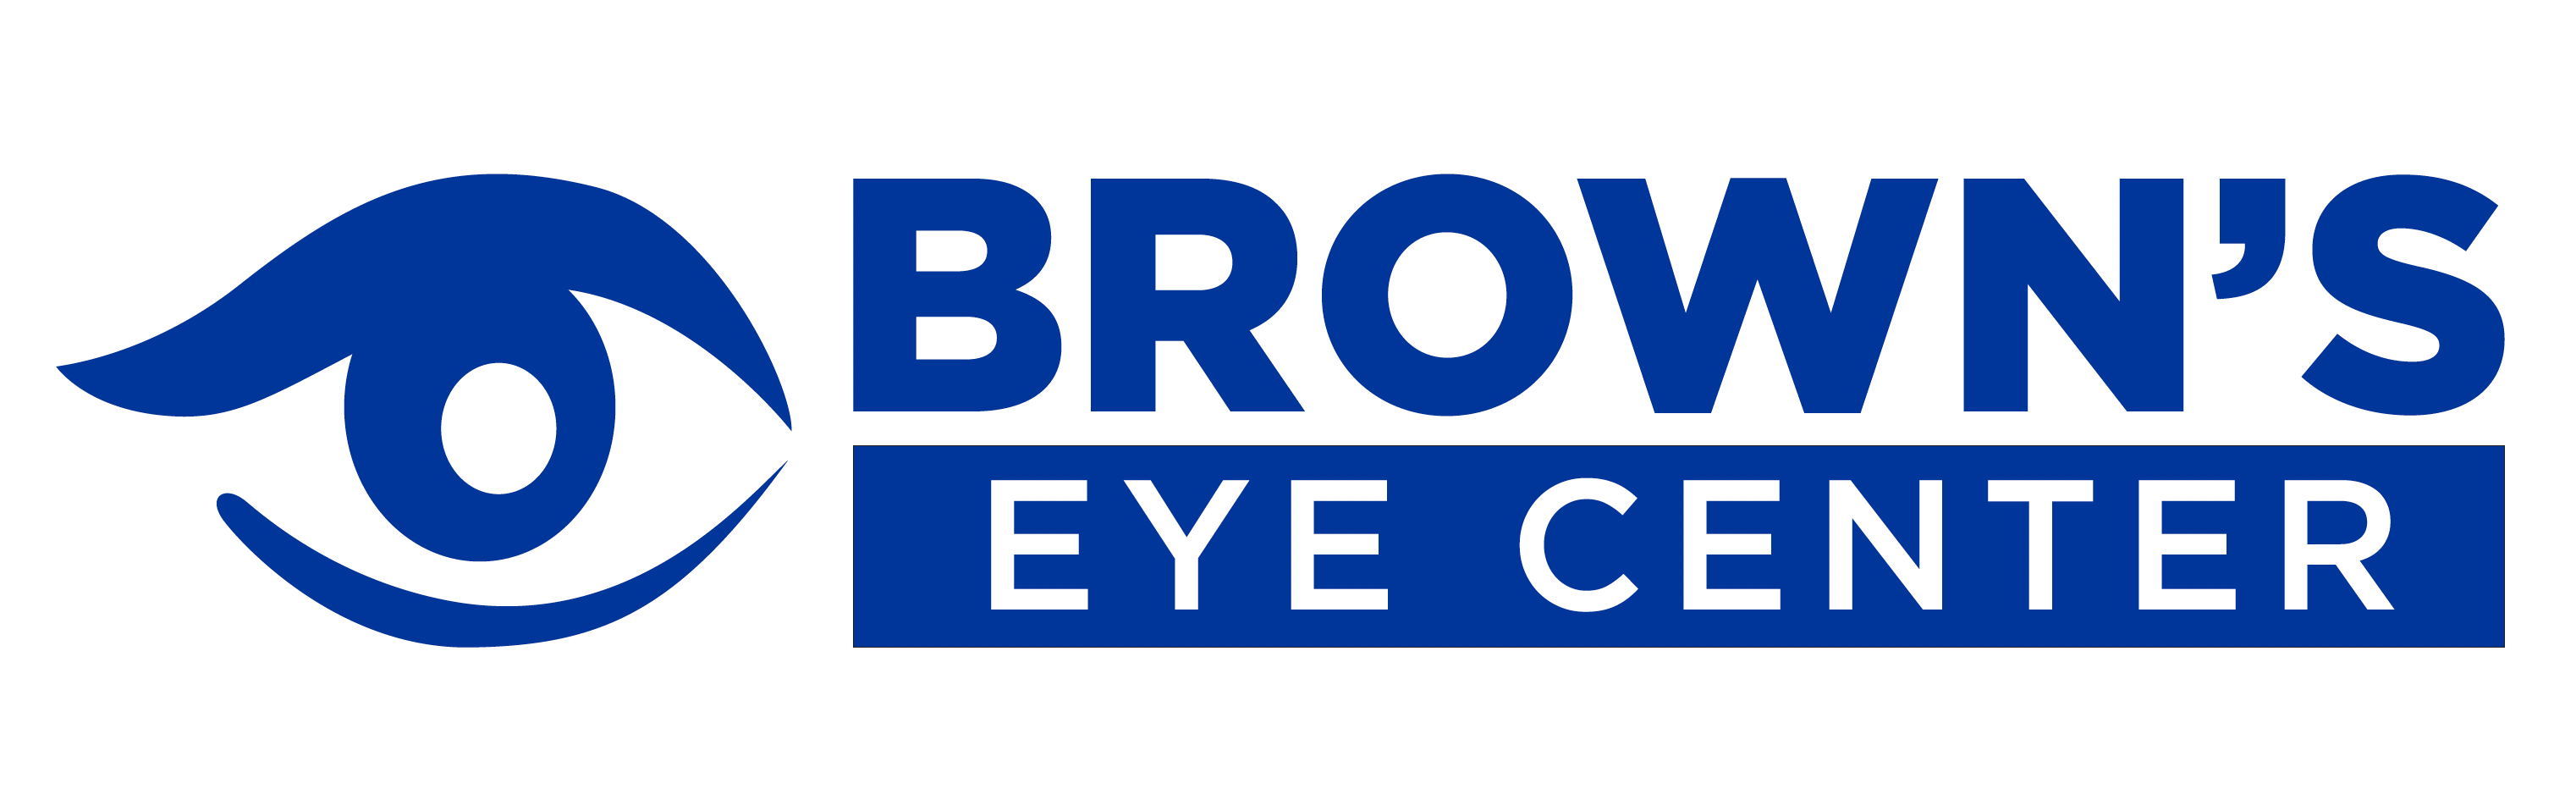 Brown's Eye Center